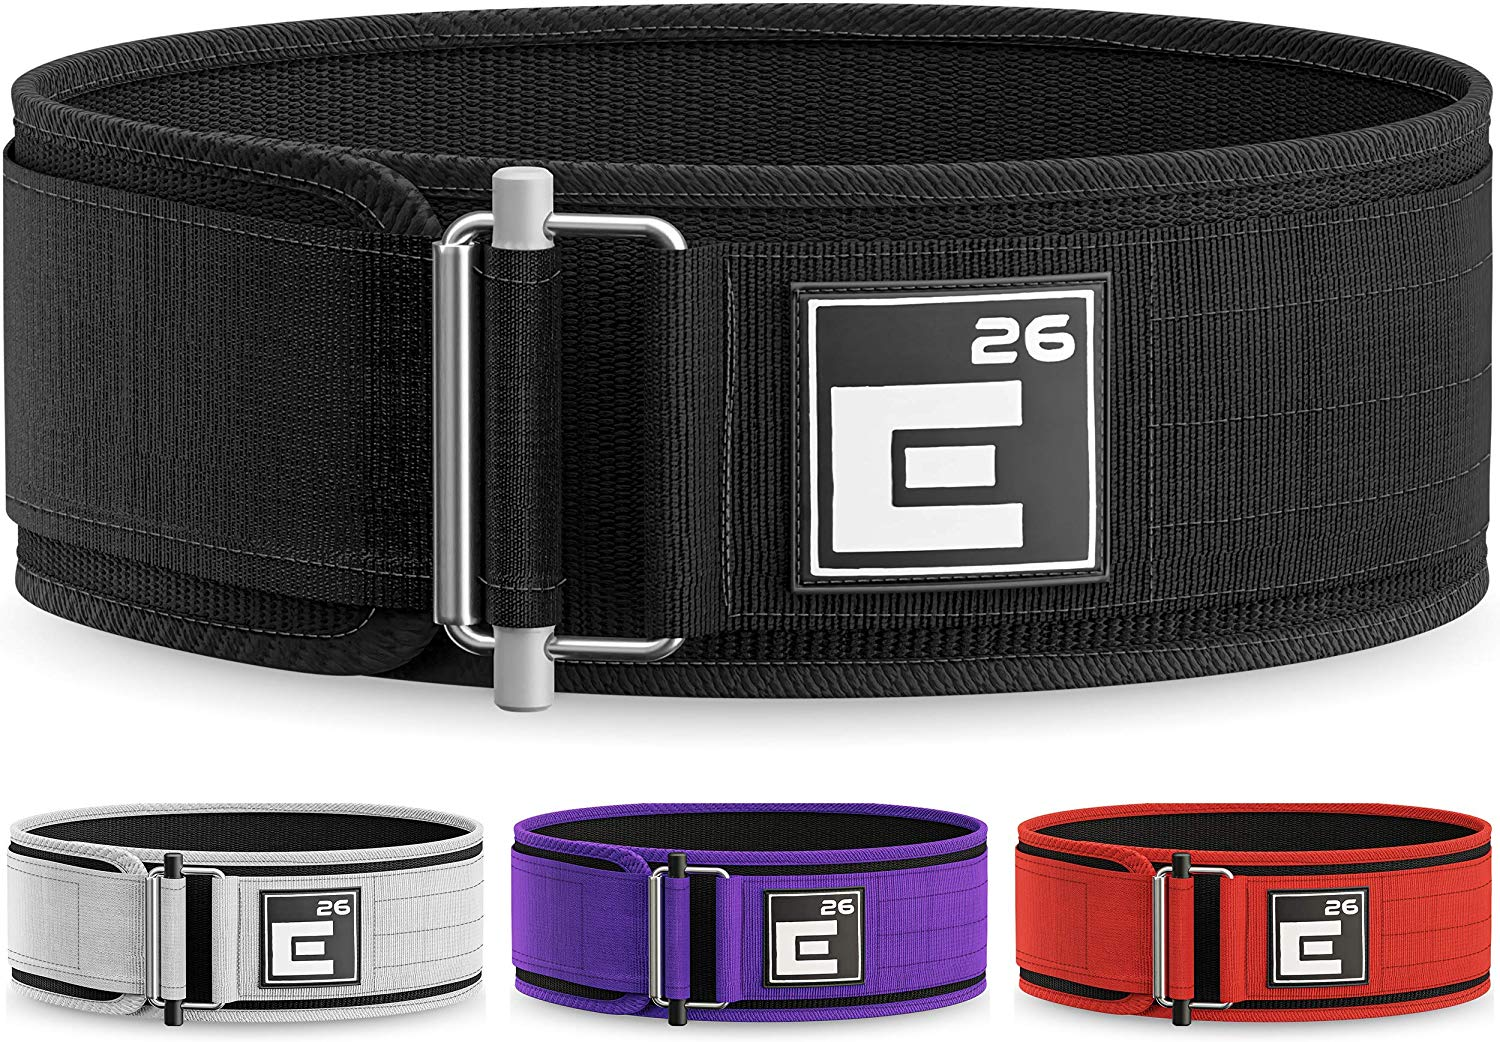 Element 26 Self-Locking Lifting Belt for Men and Women